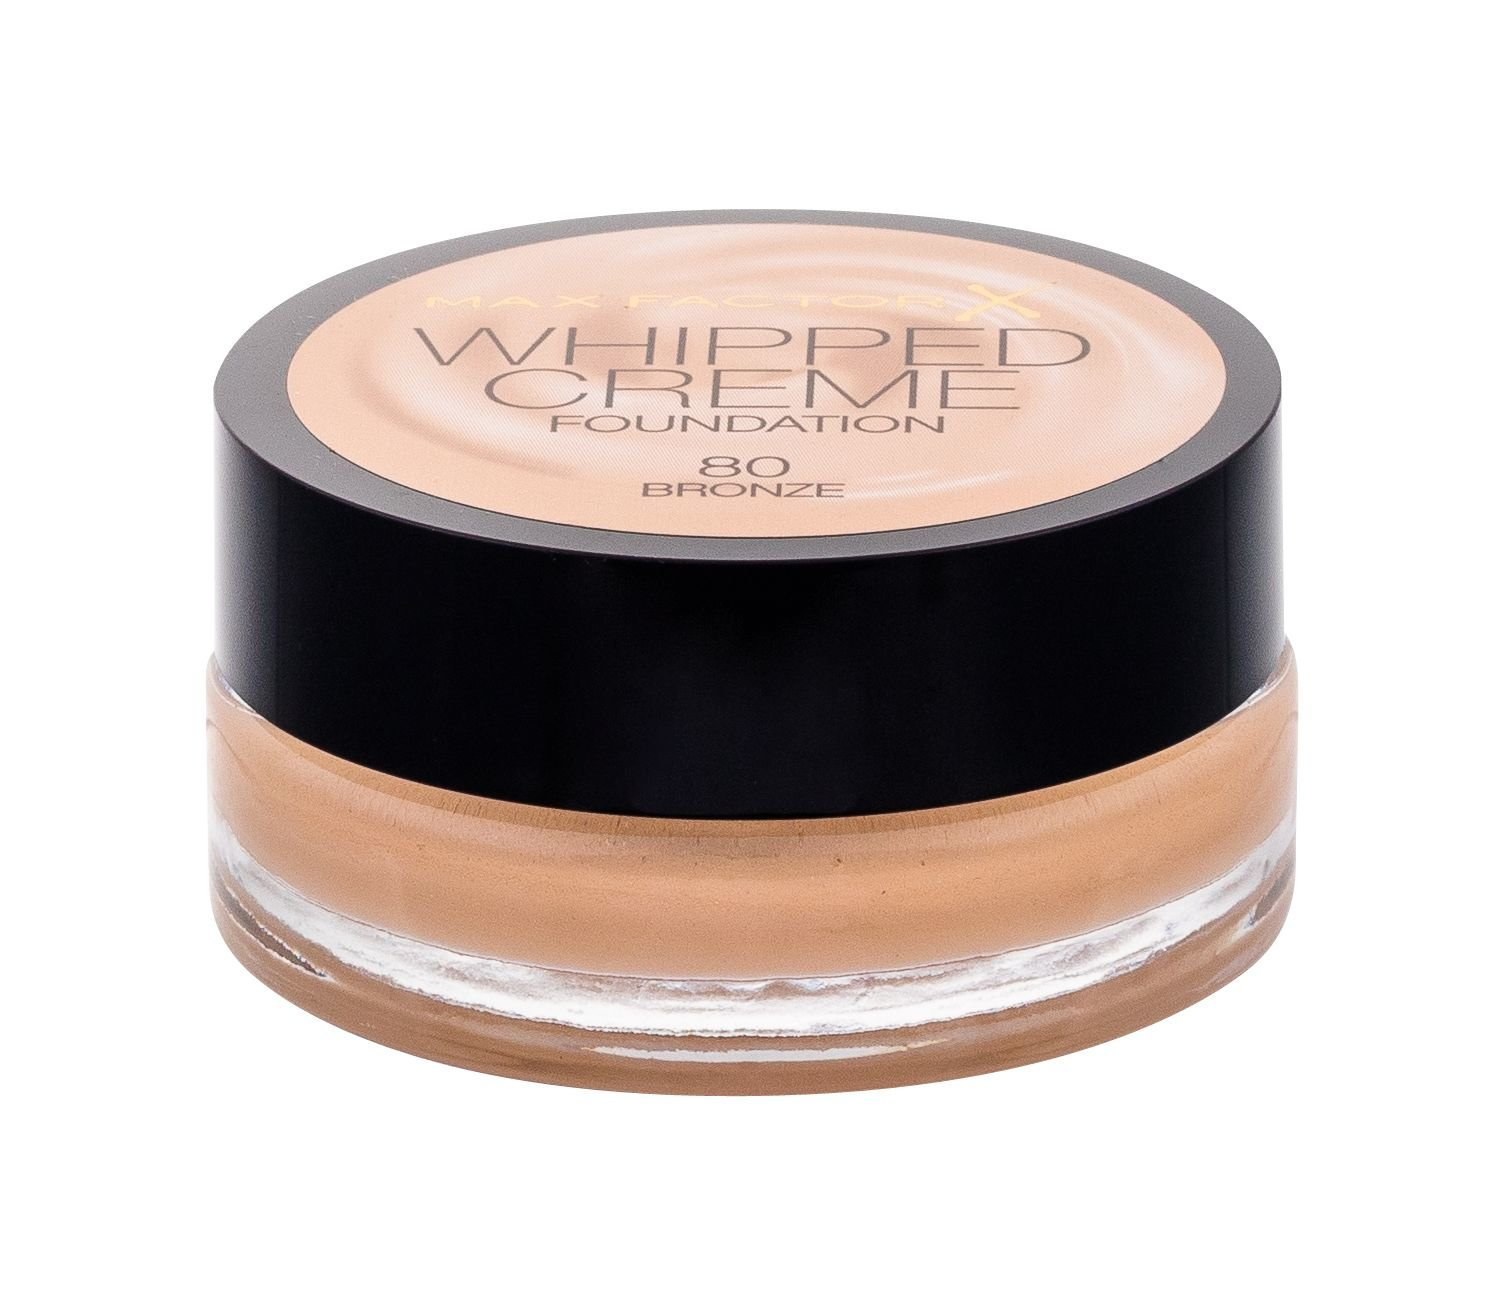 Max Factor Whipped Creme Cosmetic 18ml 80 Bronze